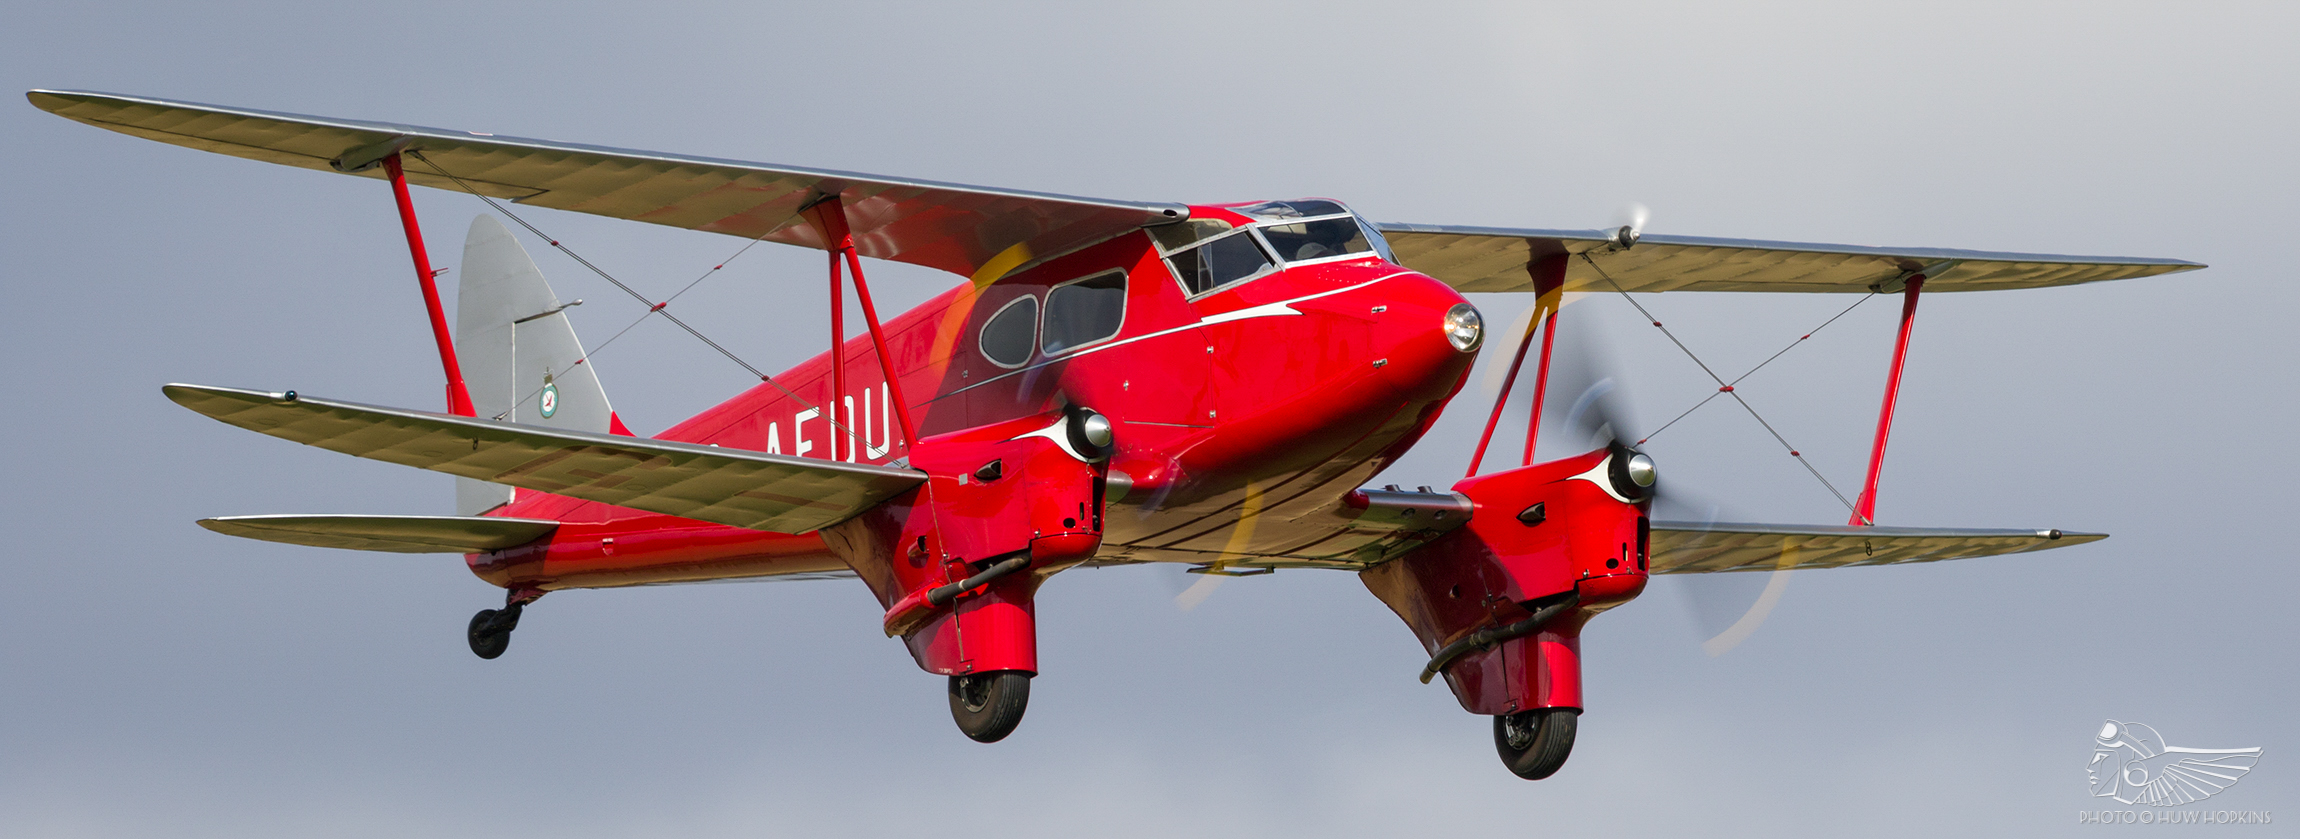 An afternoon with the de Havilland Dragonfly